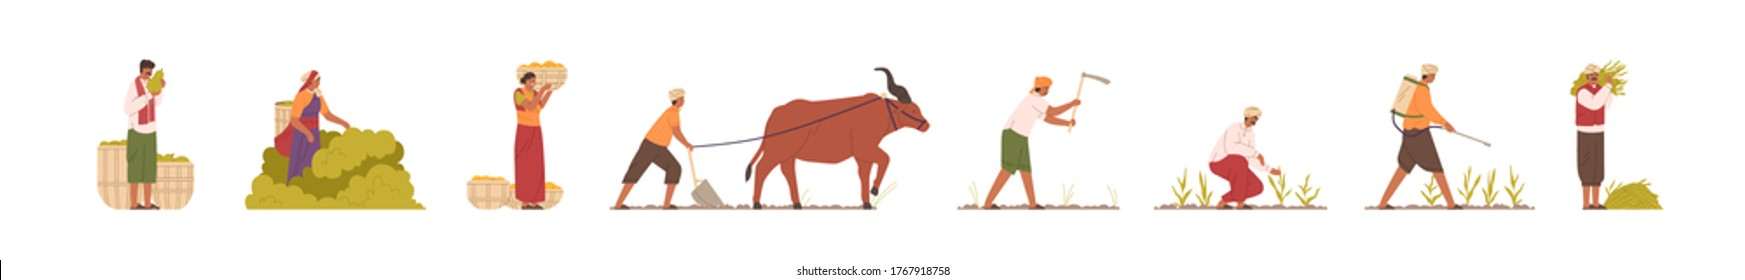 Set of Indian farmers in traditional clothes vector flat illustration. Collection of rural man and woman plowing field by cow, collect, carry, watering and mowing harvest. Agricultural workers